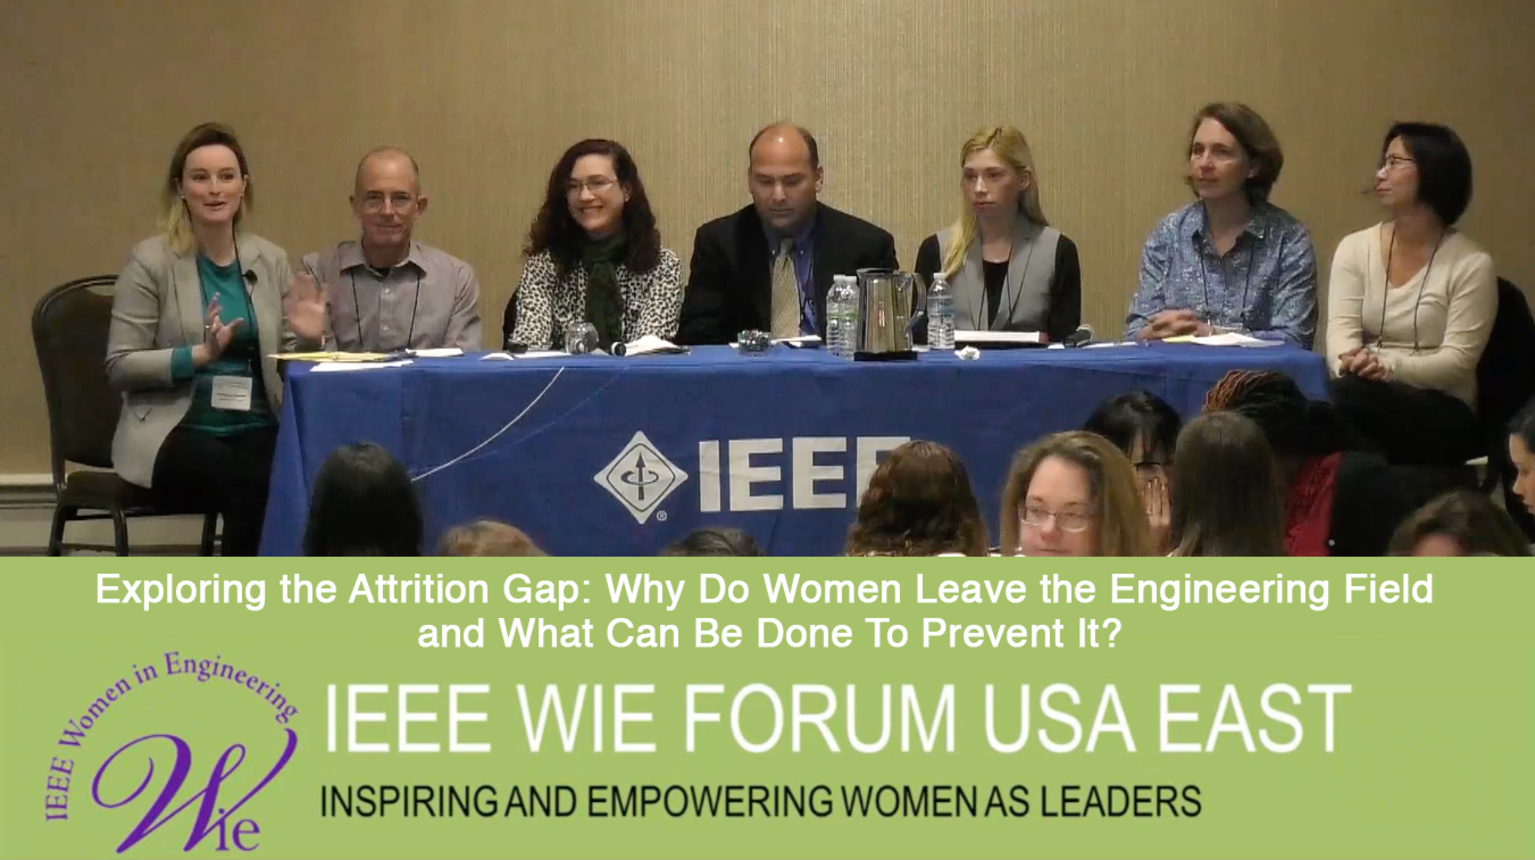 Exploring the Attrition Gap: Why Do Women Leave the Engineering Field and What Can Be Done To Prevent It? - panel from IEEE WIE Forum USA East 2017